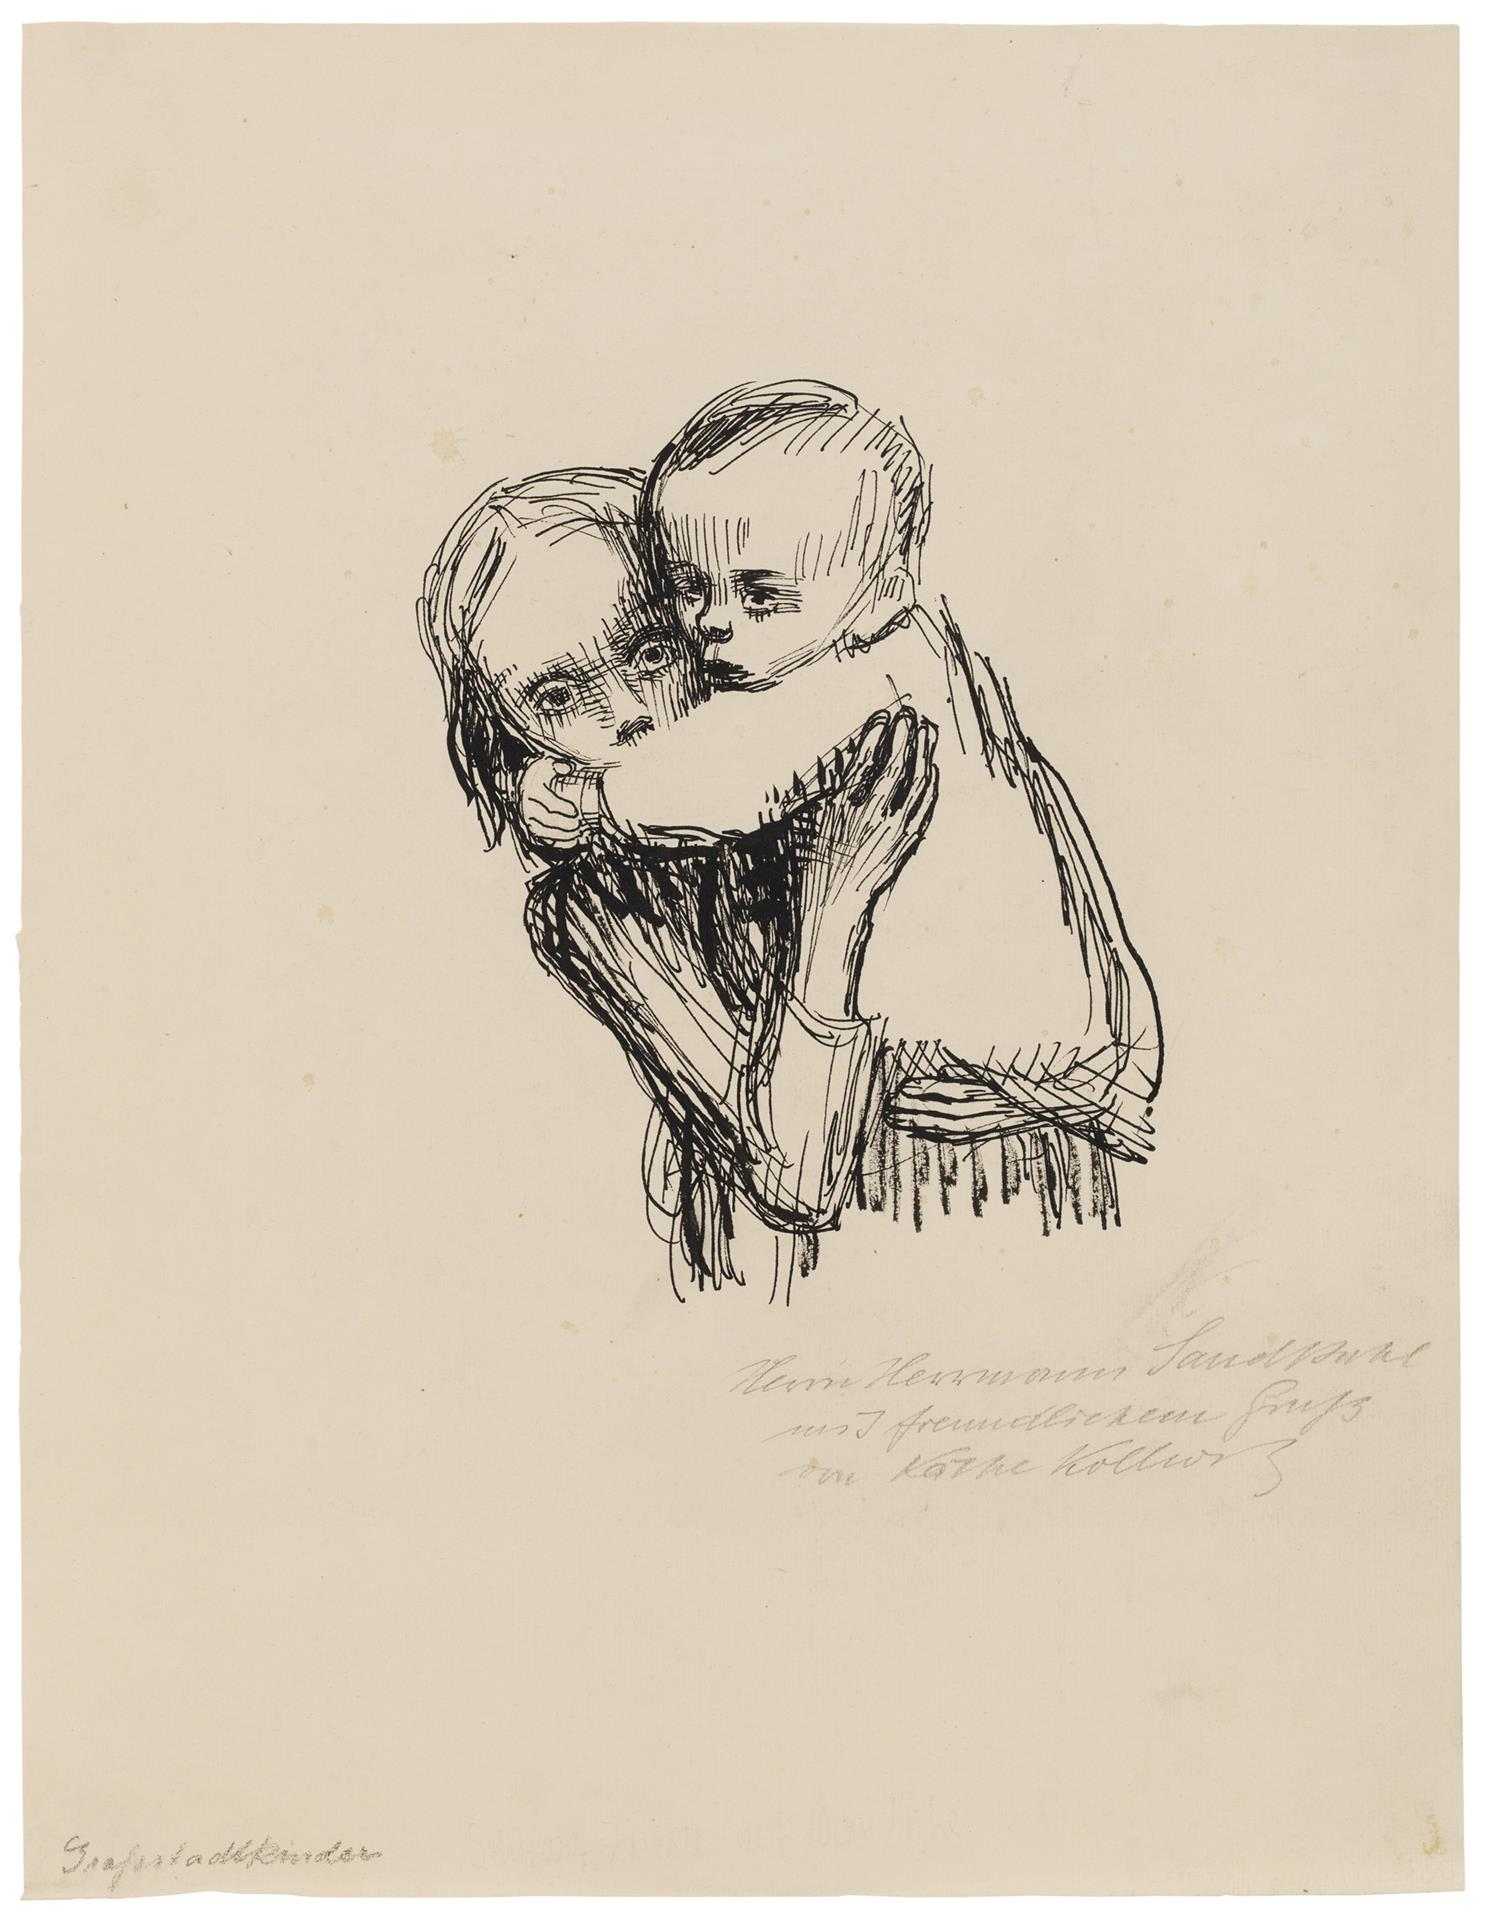 Käthe Kollwitz, Berlin Children, c 1922, pen on yellowish laid paper, NT 997a, Cologne Kollwitz Collection © Käthe Kollwitz Museum Köln